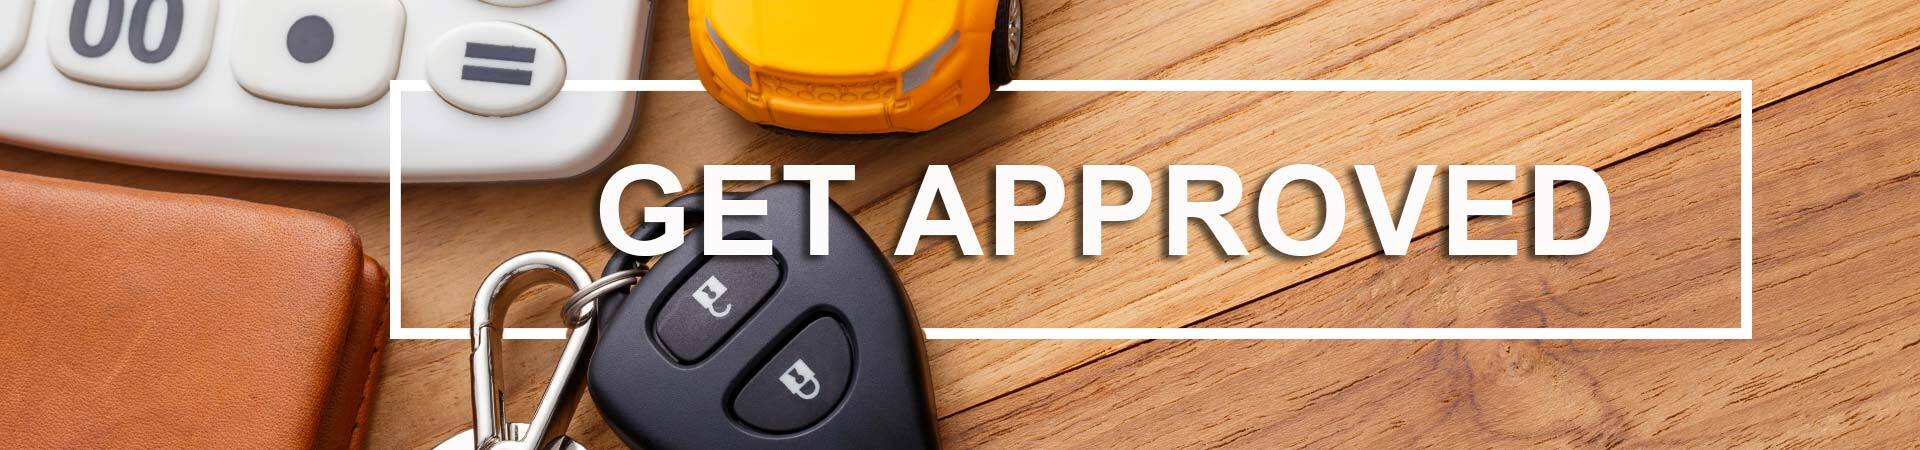 Get Approved at E-Z Auto Sales